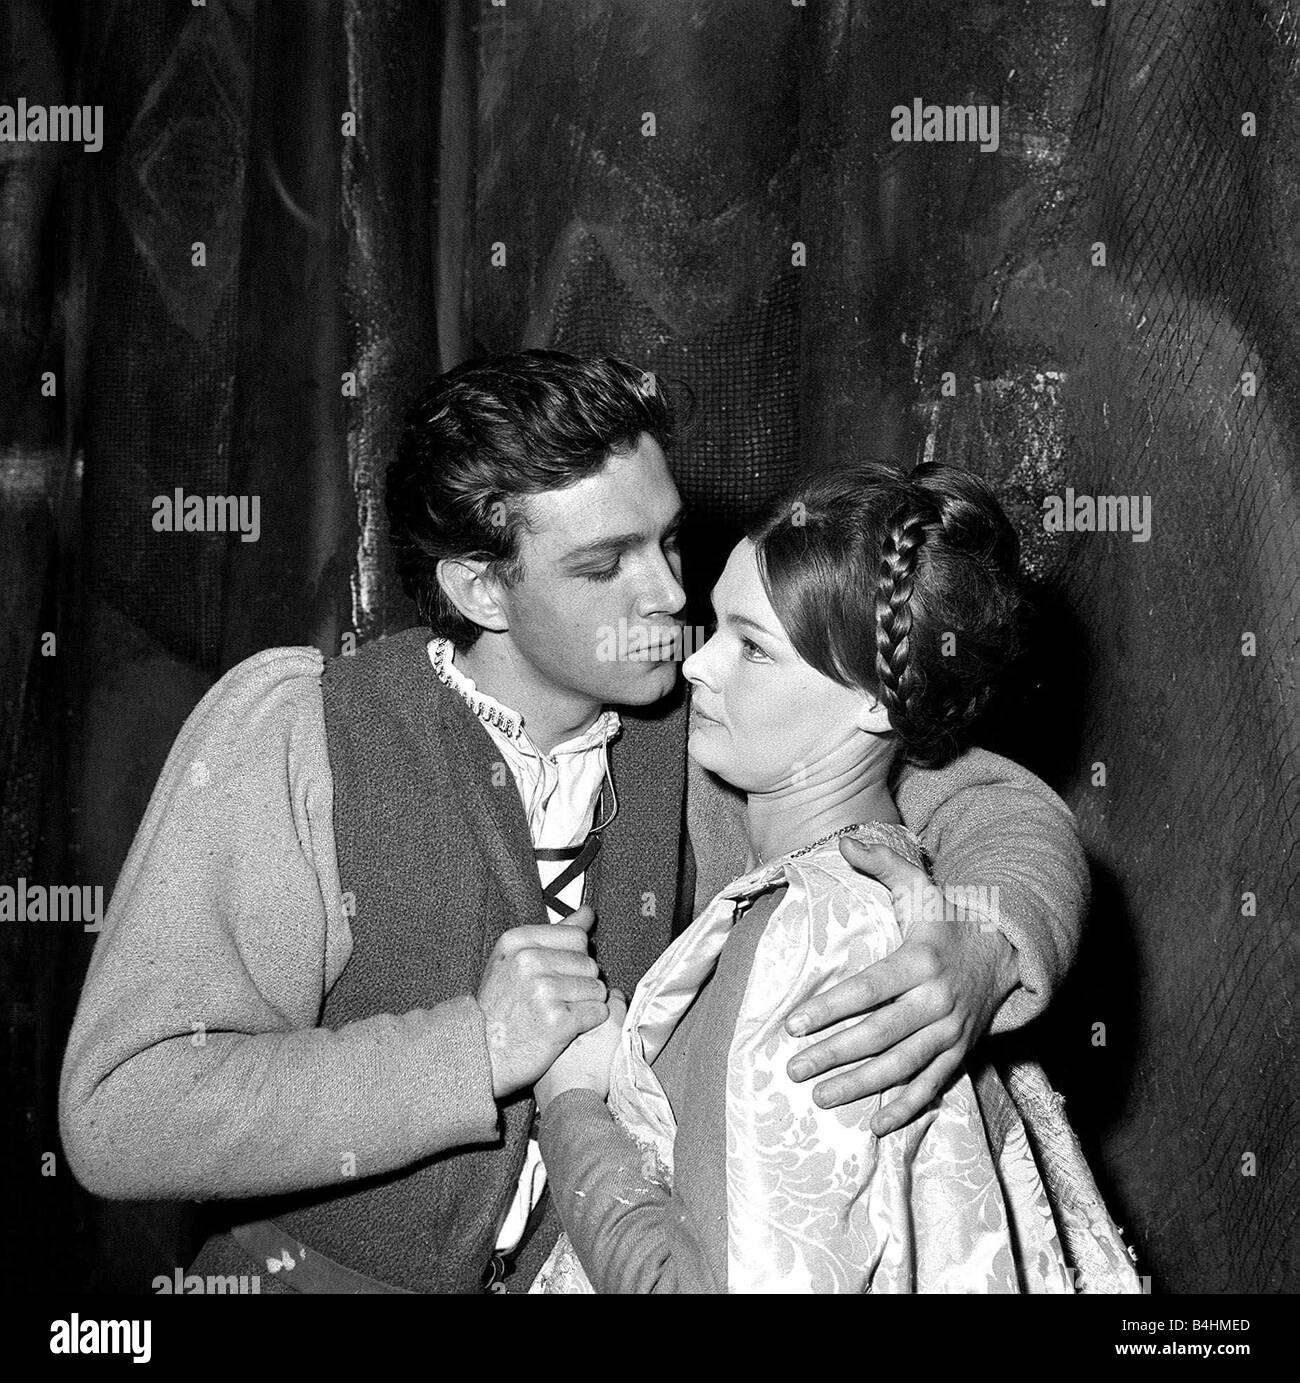 romeo and juliet october 1960 judi dench as juliet and